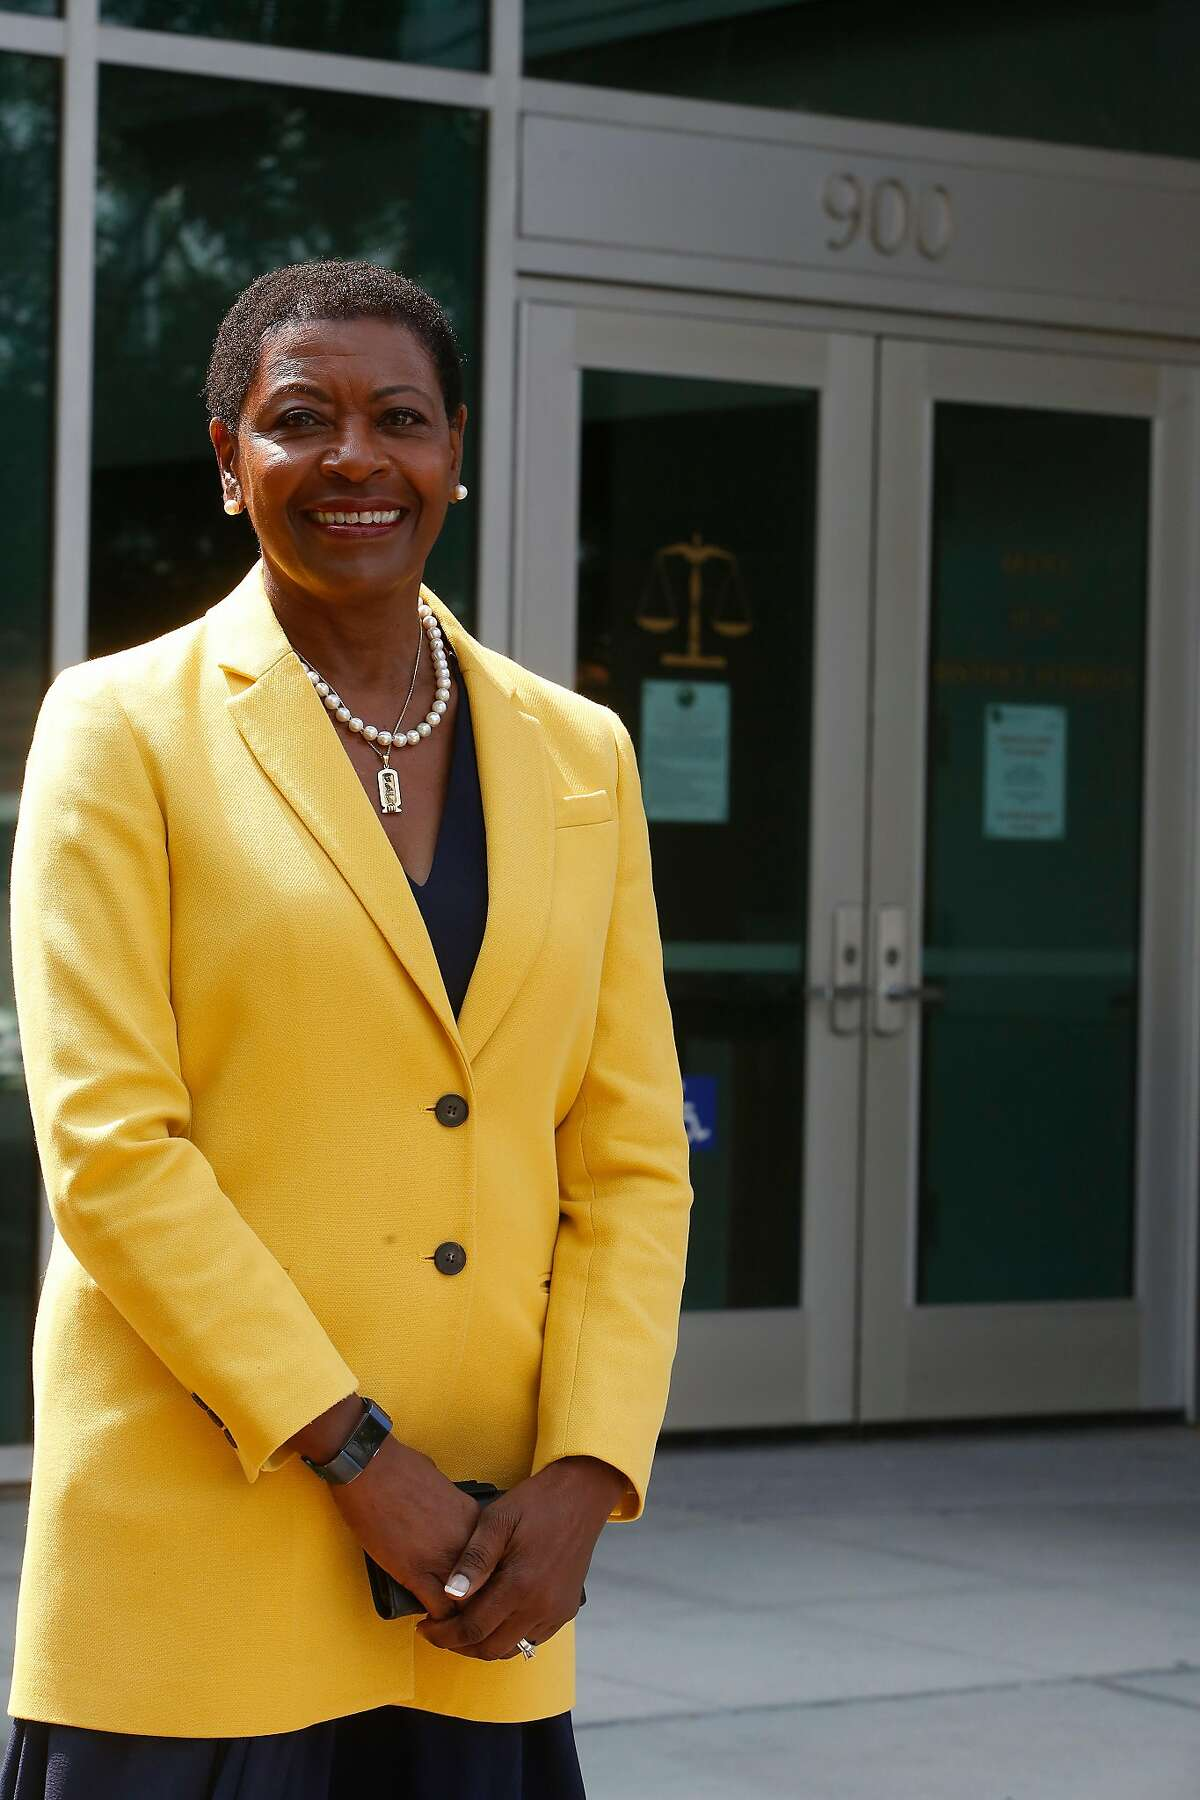 District Attorney Diana Becton stands for a portrait in front of the Office of the District Attorney on Friday, August 28, 2020 in Martinez, Calif.